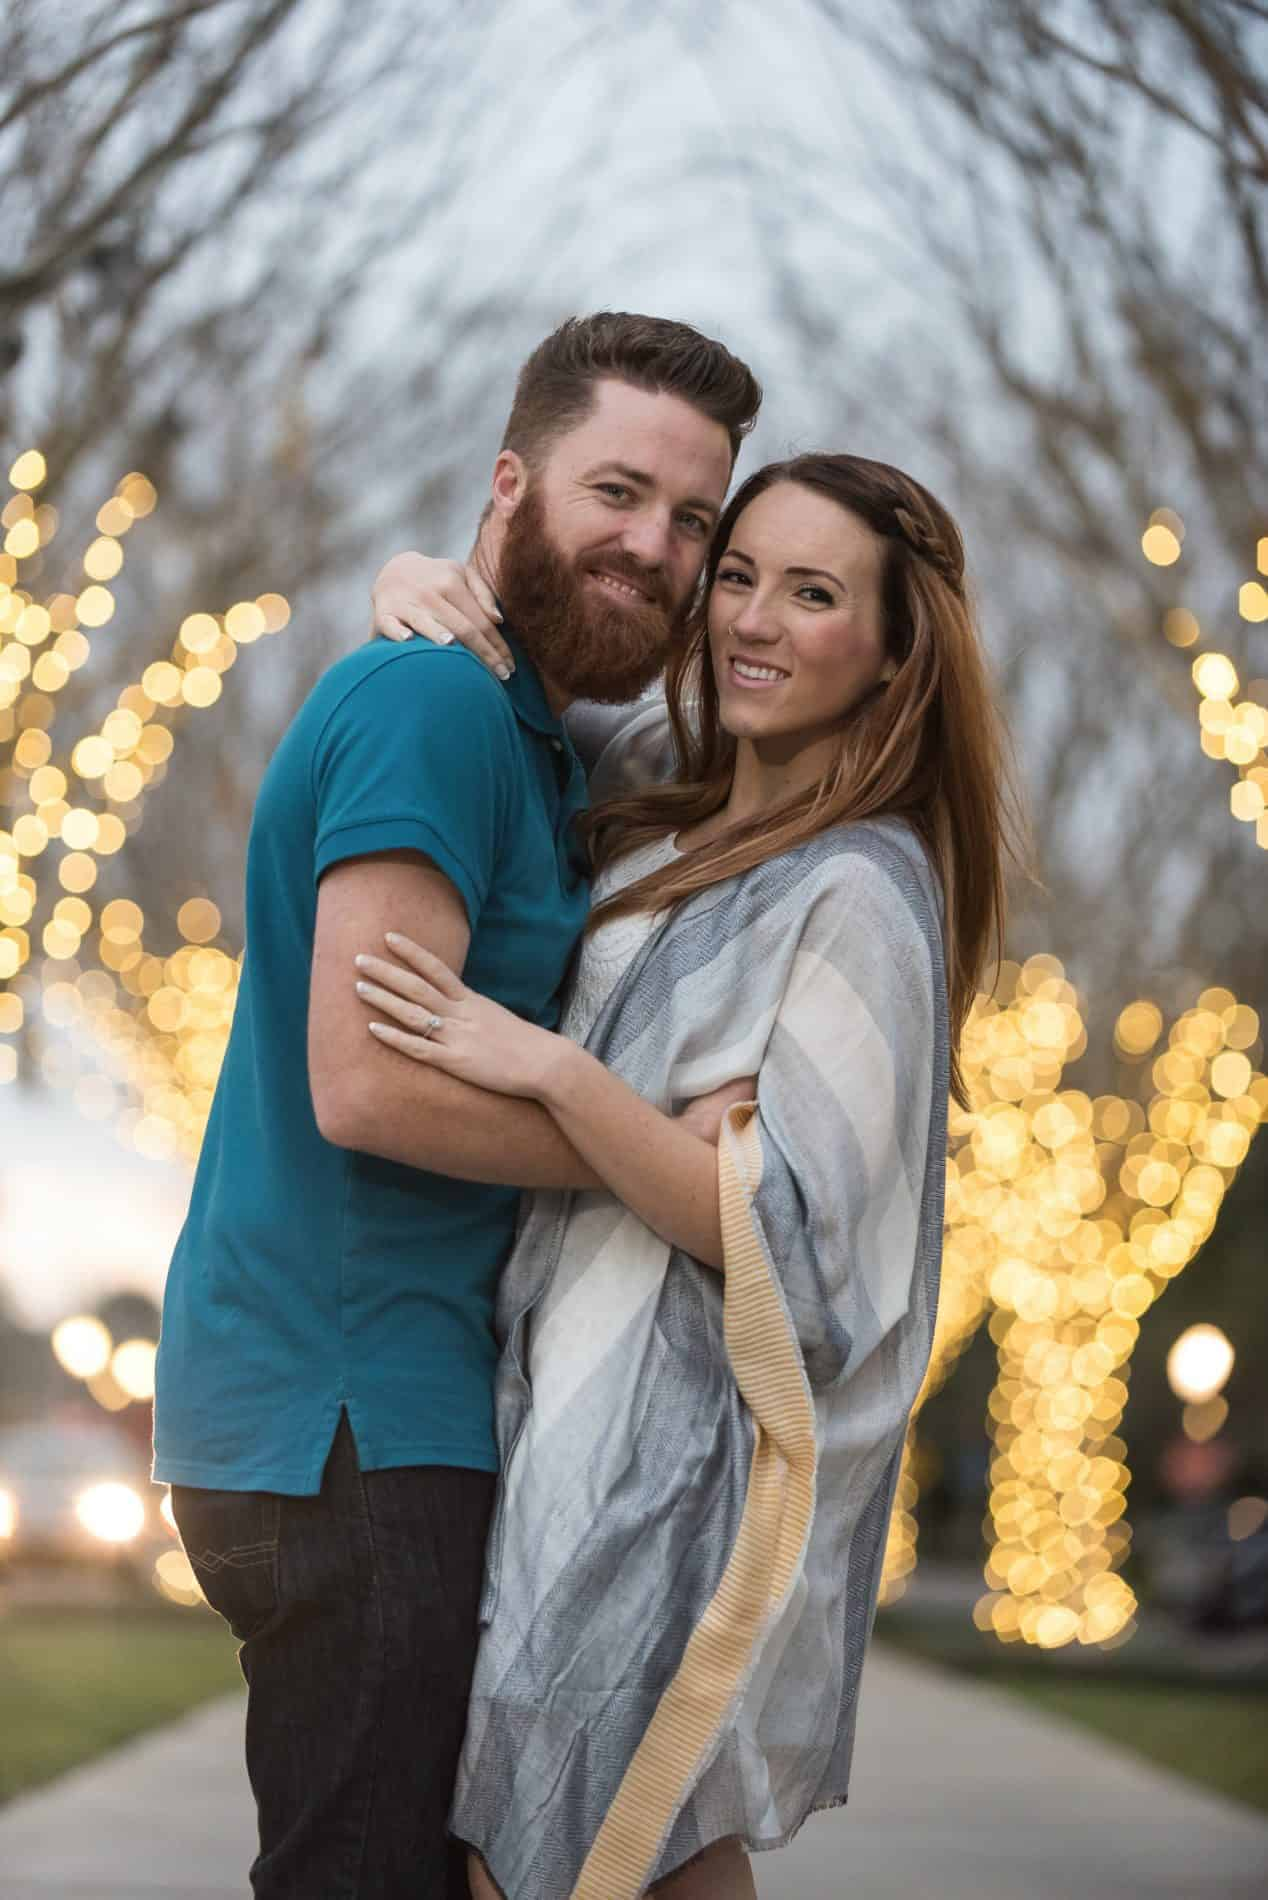 The lights come on in downtown Winter Garden during this couples photo session